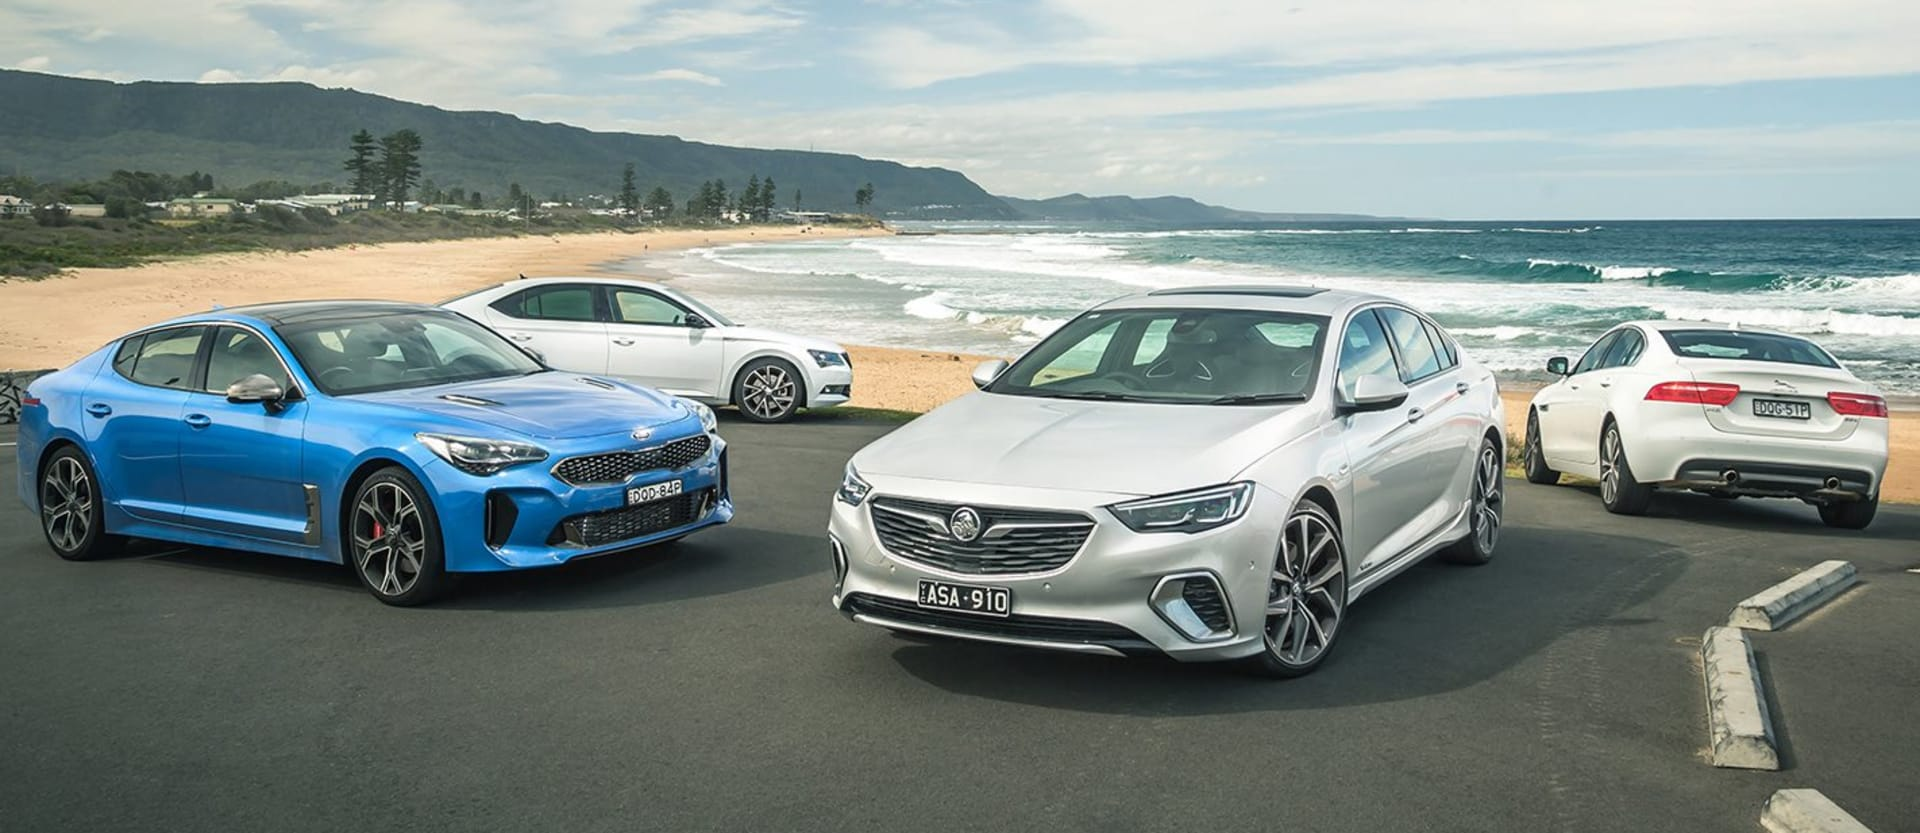 holden skoda kia jaguar comparison group